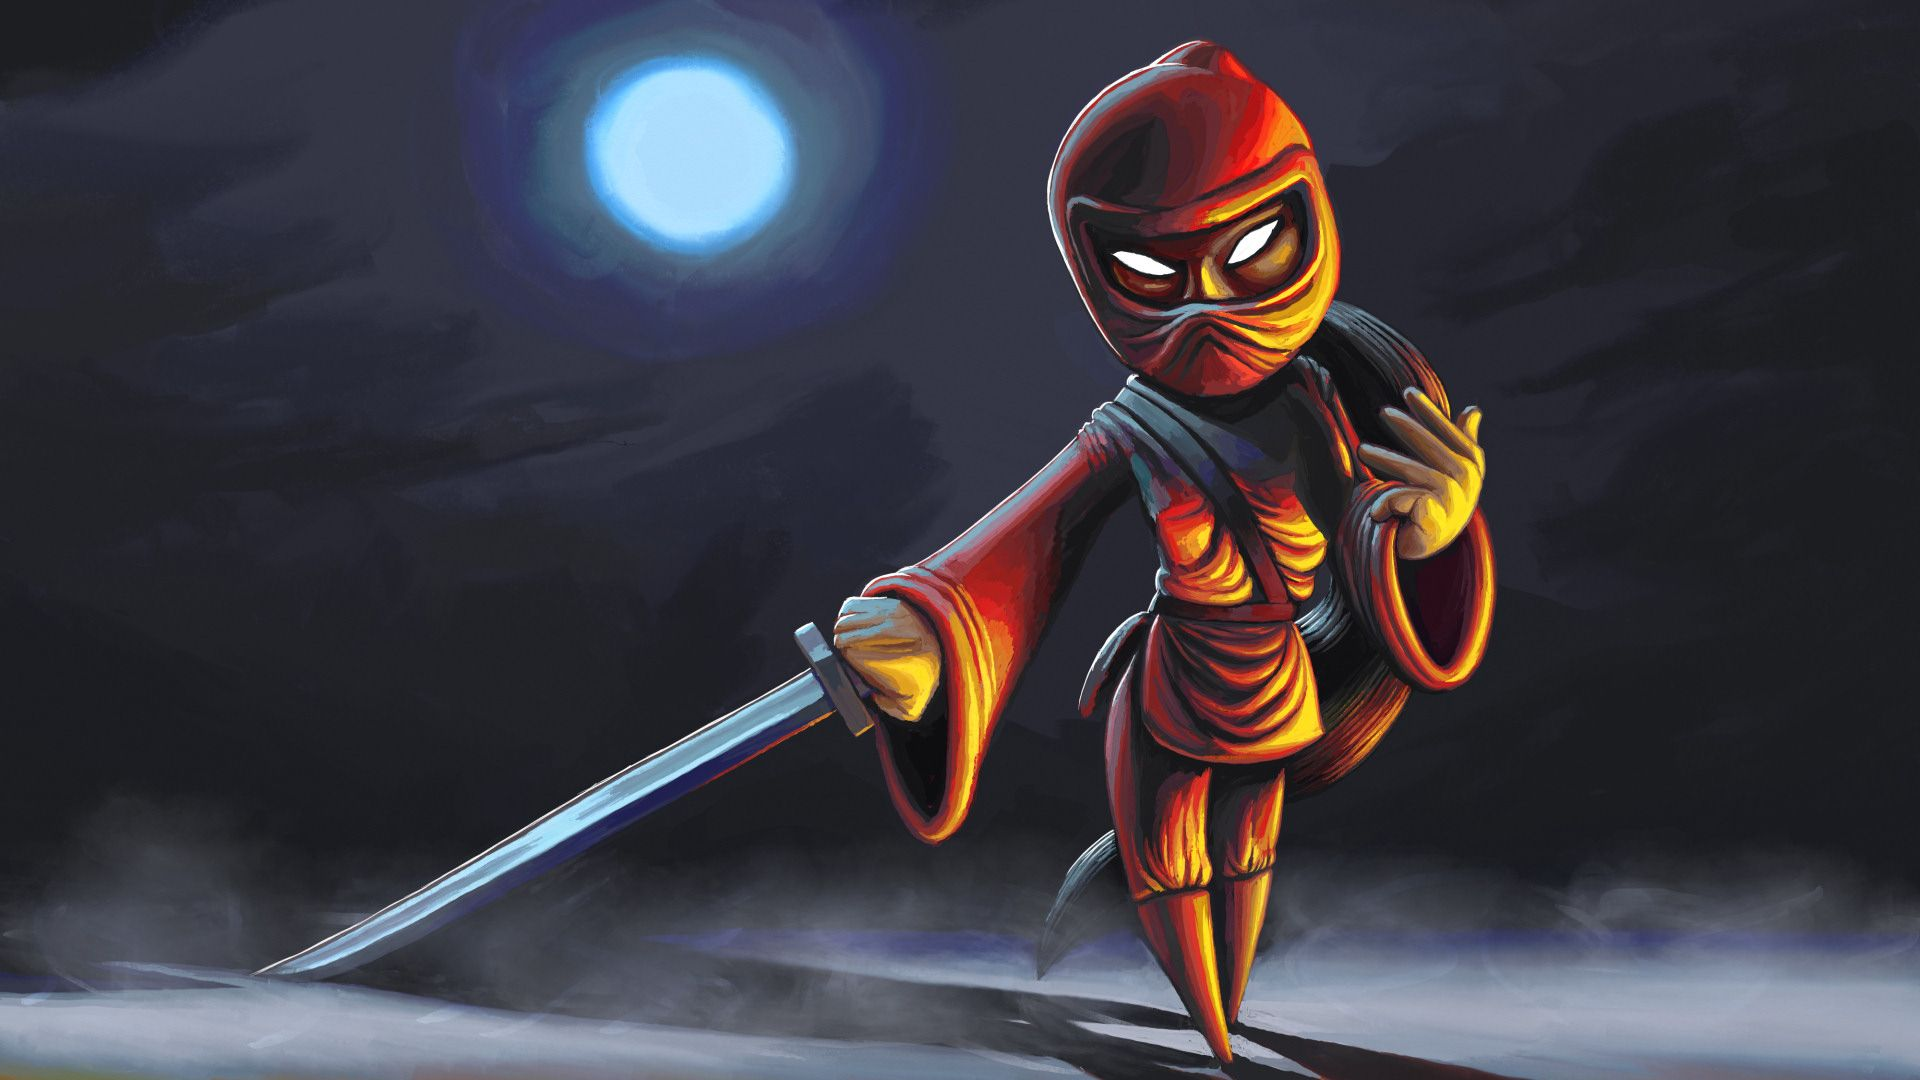 Ninja hyper wallpapers top free ninja hyper backgrounds - Steam card exchange ...